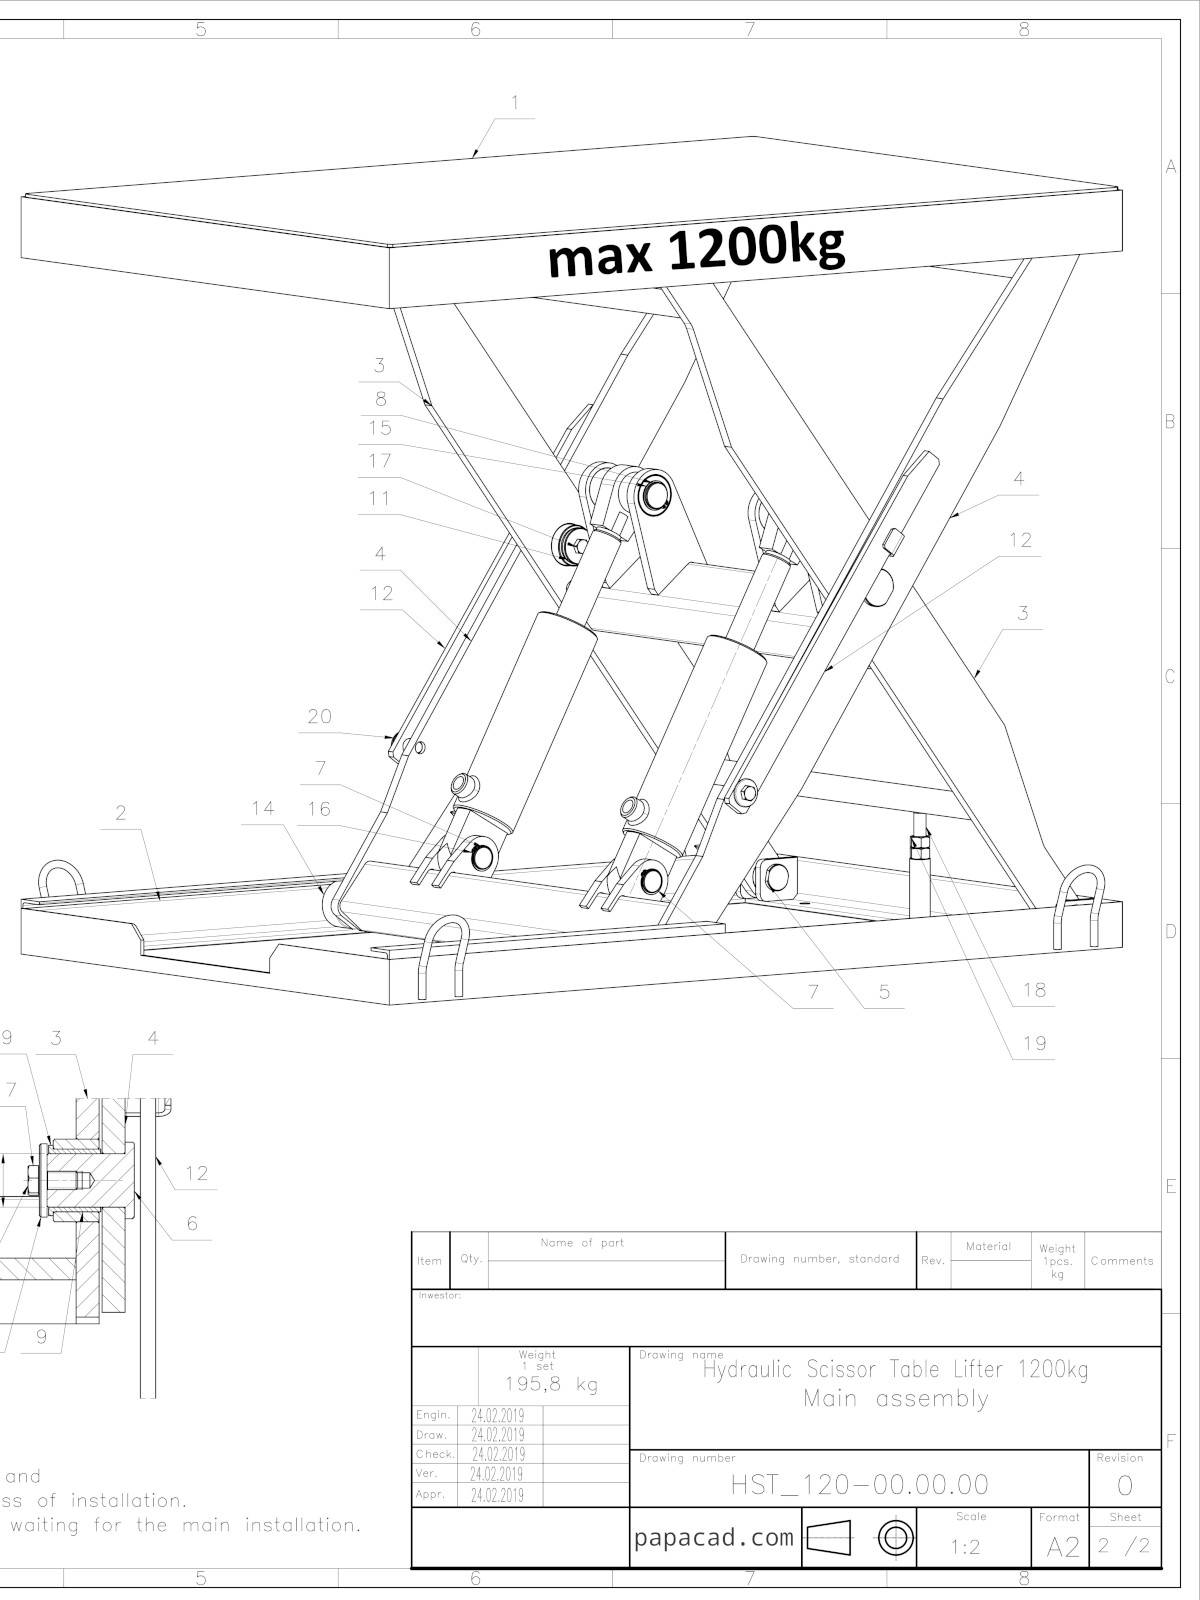 1200kg Scissor Table Lifter - Complete CAD design (3D Inventor, STEP, STL,  DWF and 2D CAD drawings)